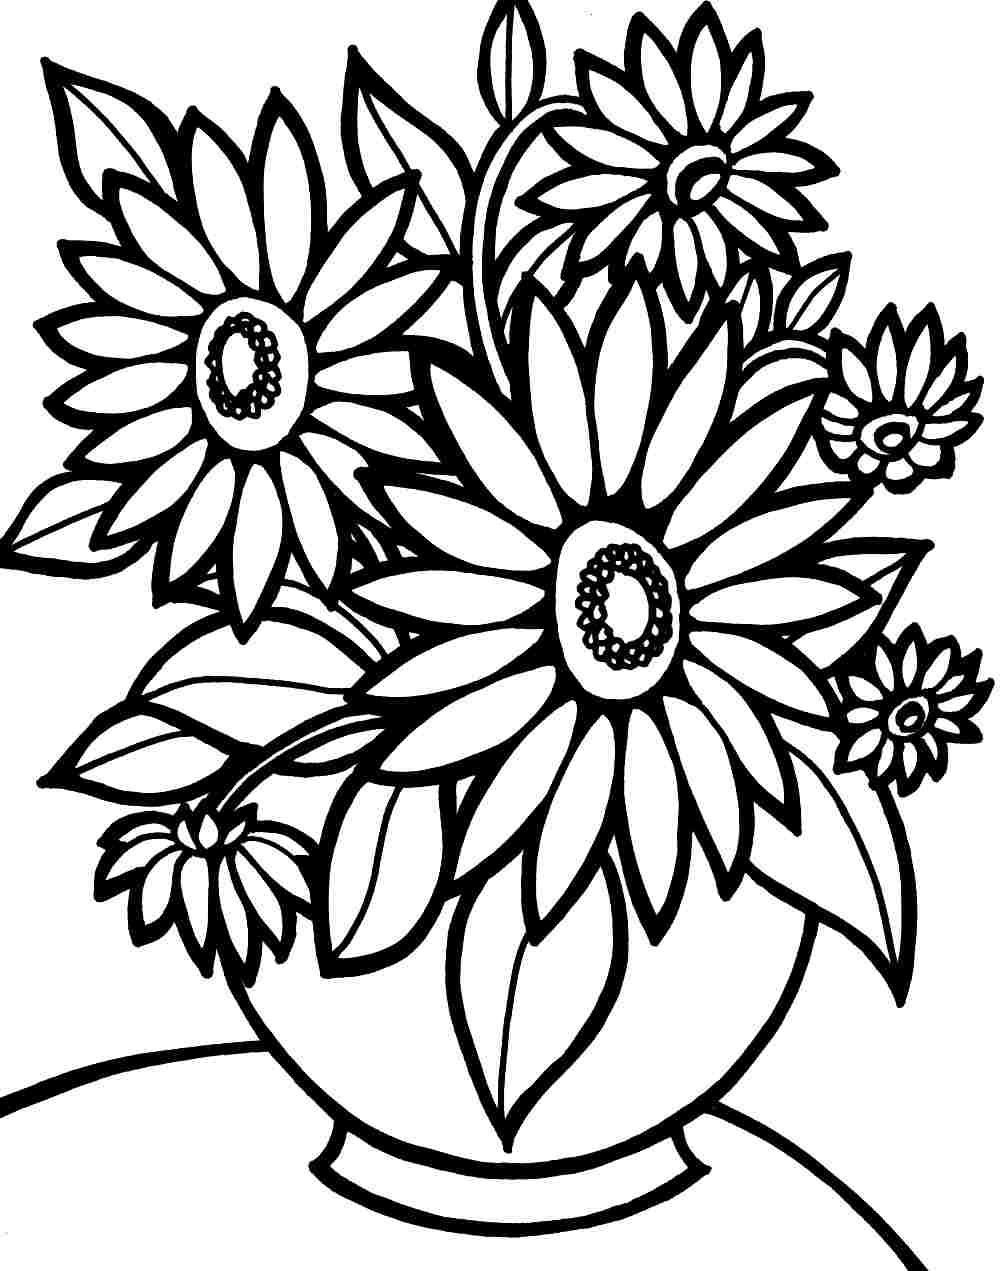 Coloring Pages For Kids Flowers  Colouring Pages Bouquet Flowers Printable Free For Kids